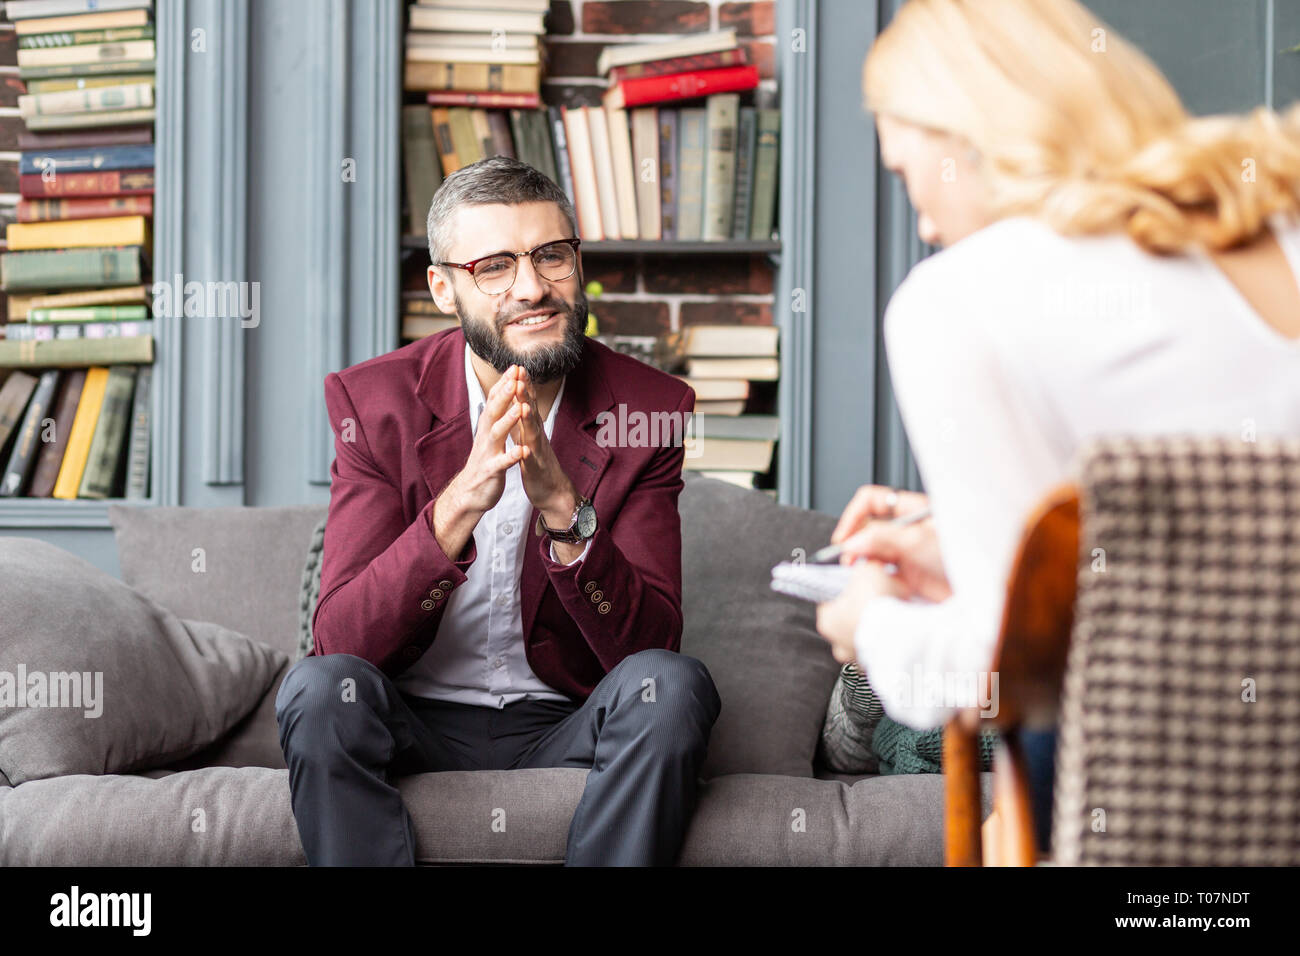 Bearded man smiling after successful talk with private therapist - Stock Image